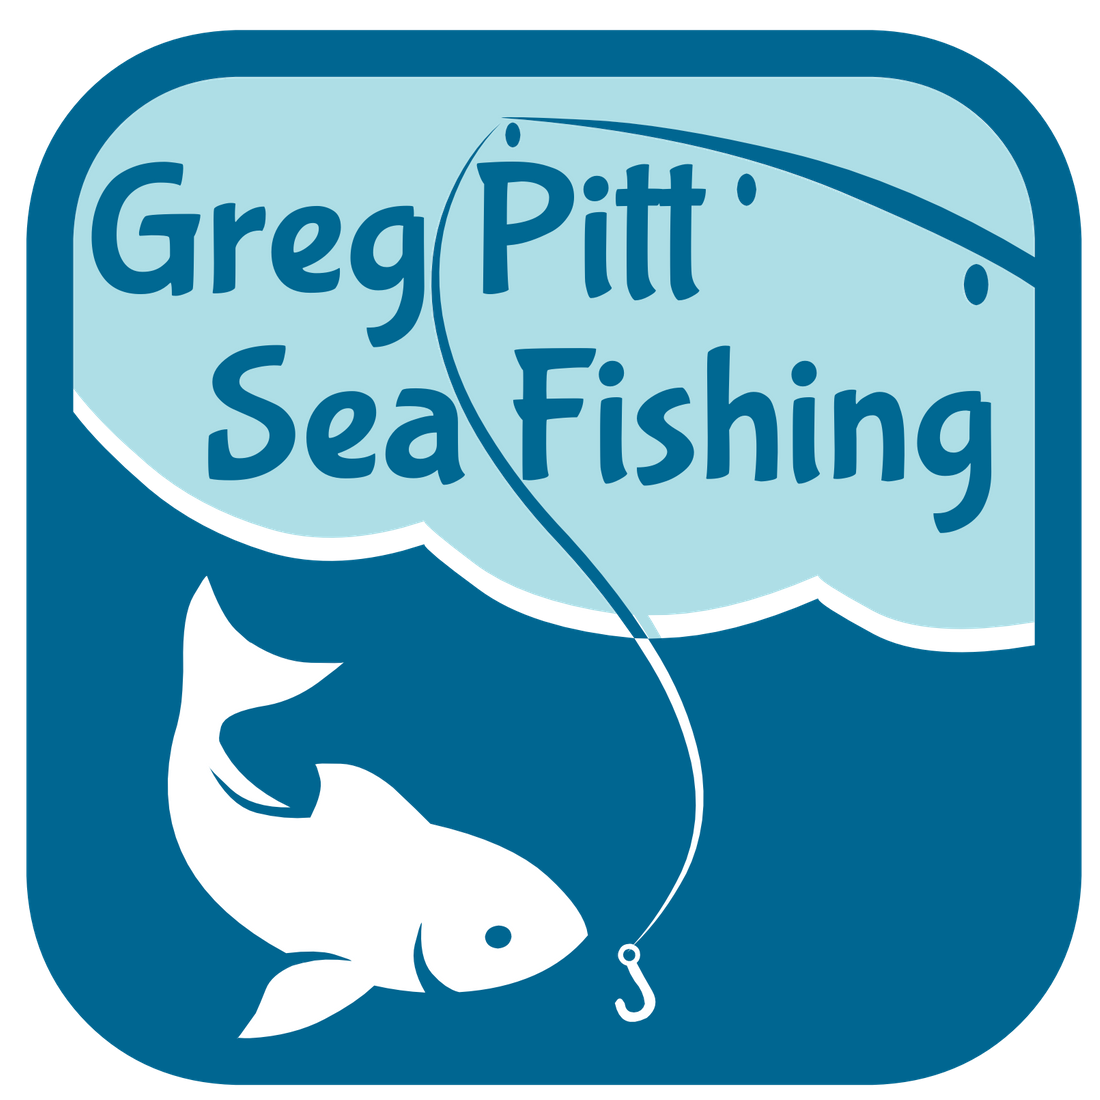 gregpittseafishing.co.uk logo